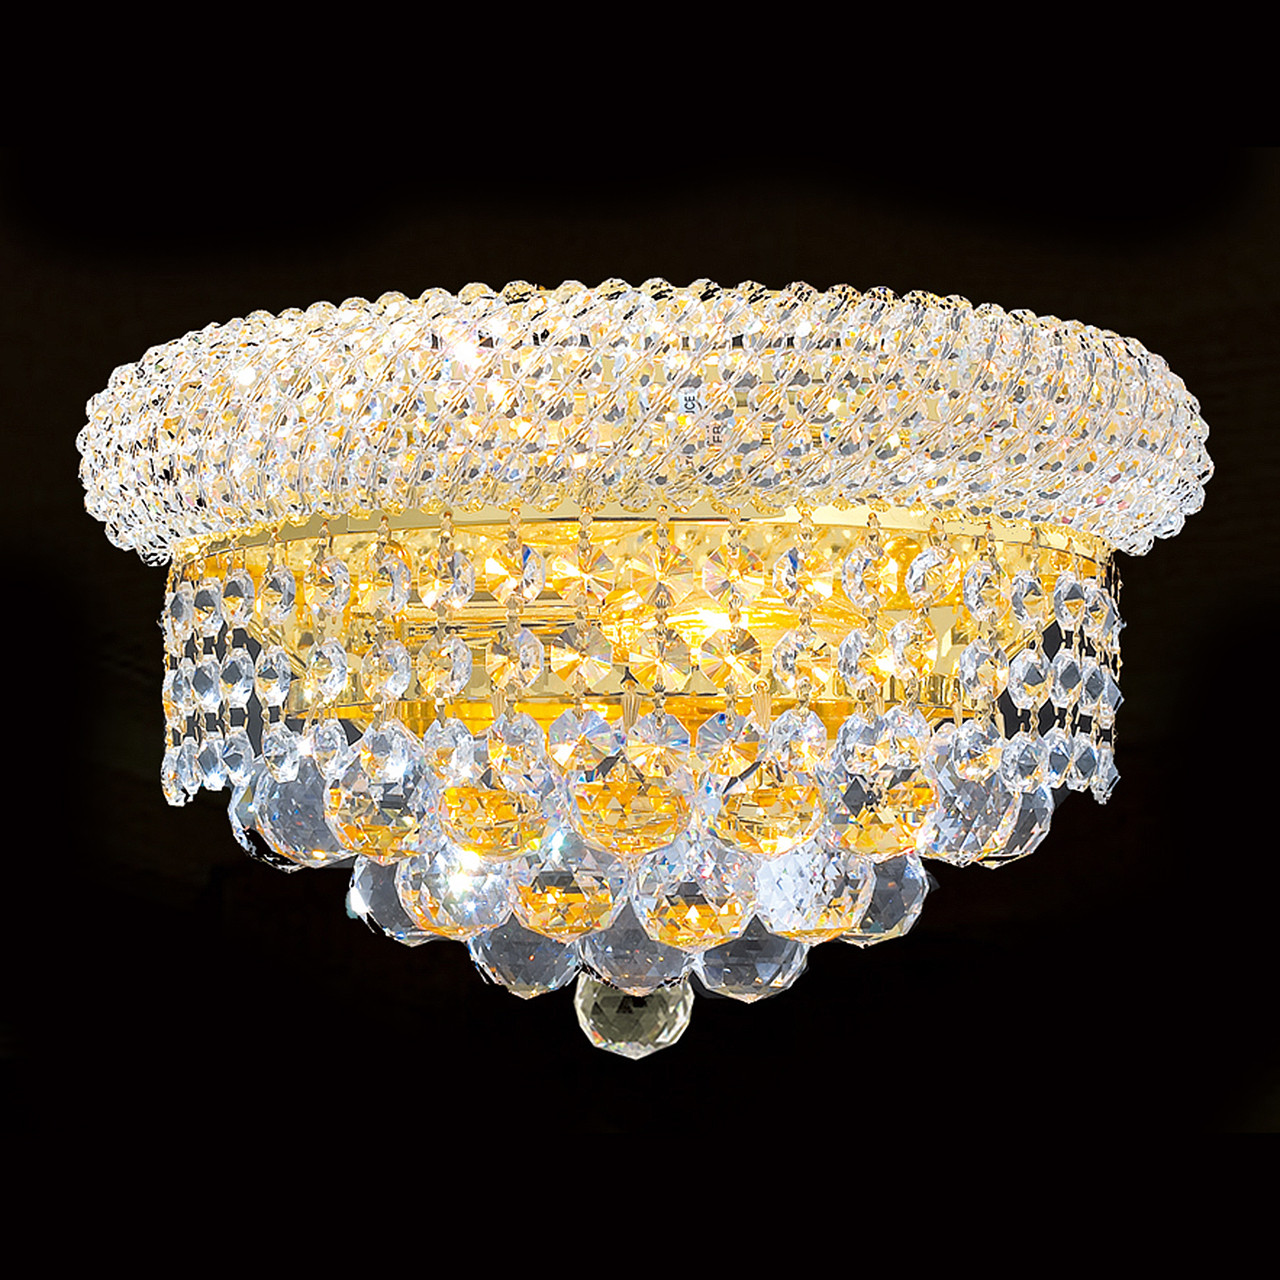 sconces pairs sconce furniture available kinkeldey of stick crystal ice pair wall lighting and multiple leuchten listings lights